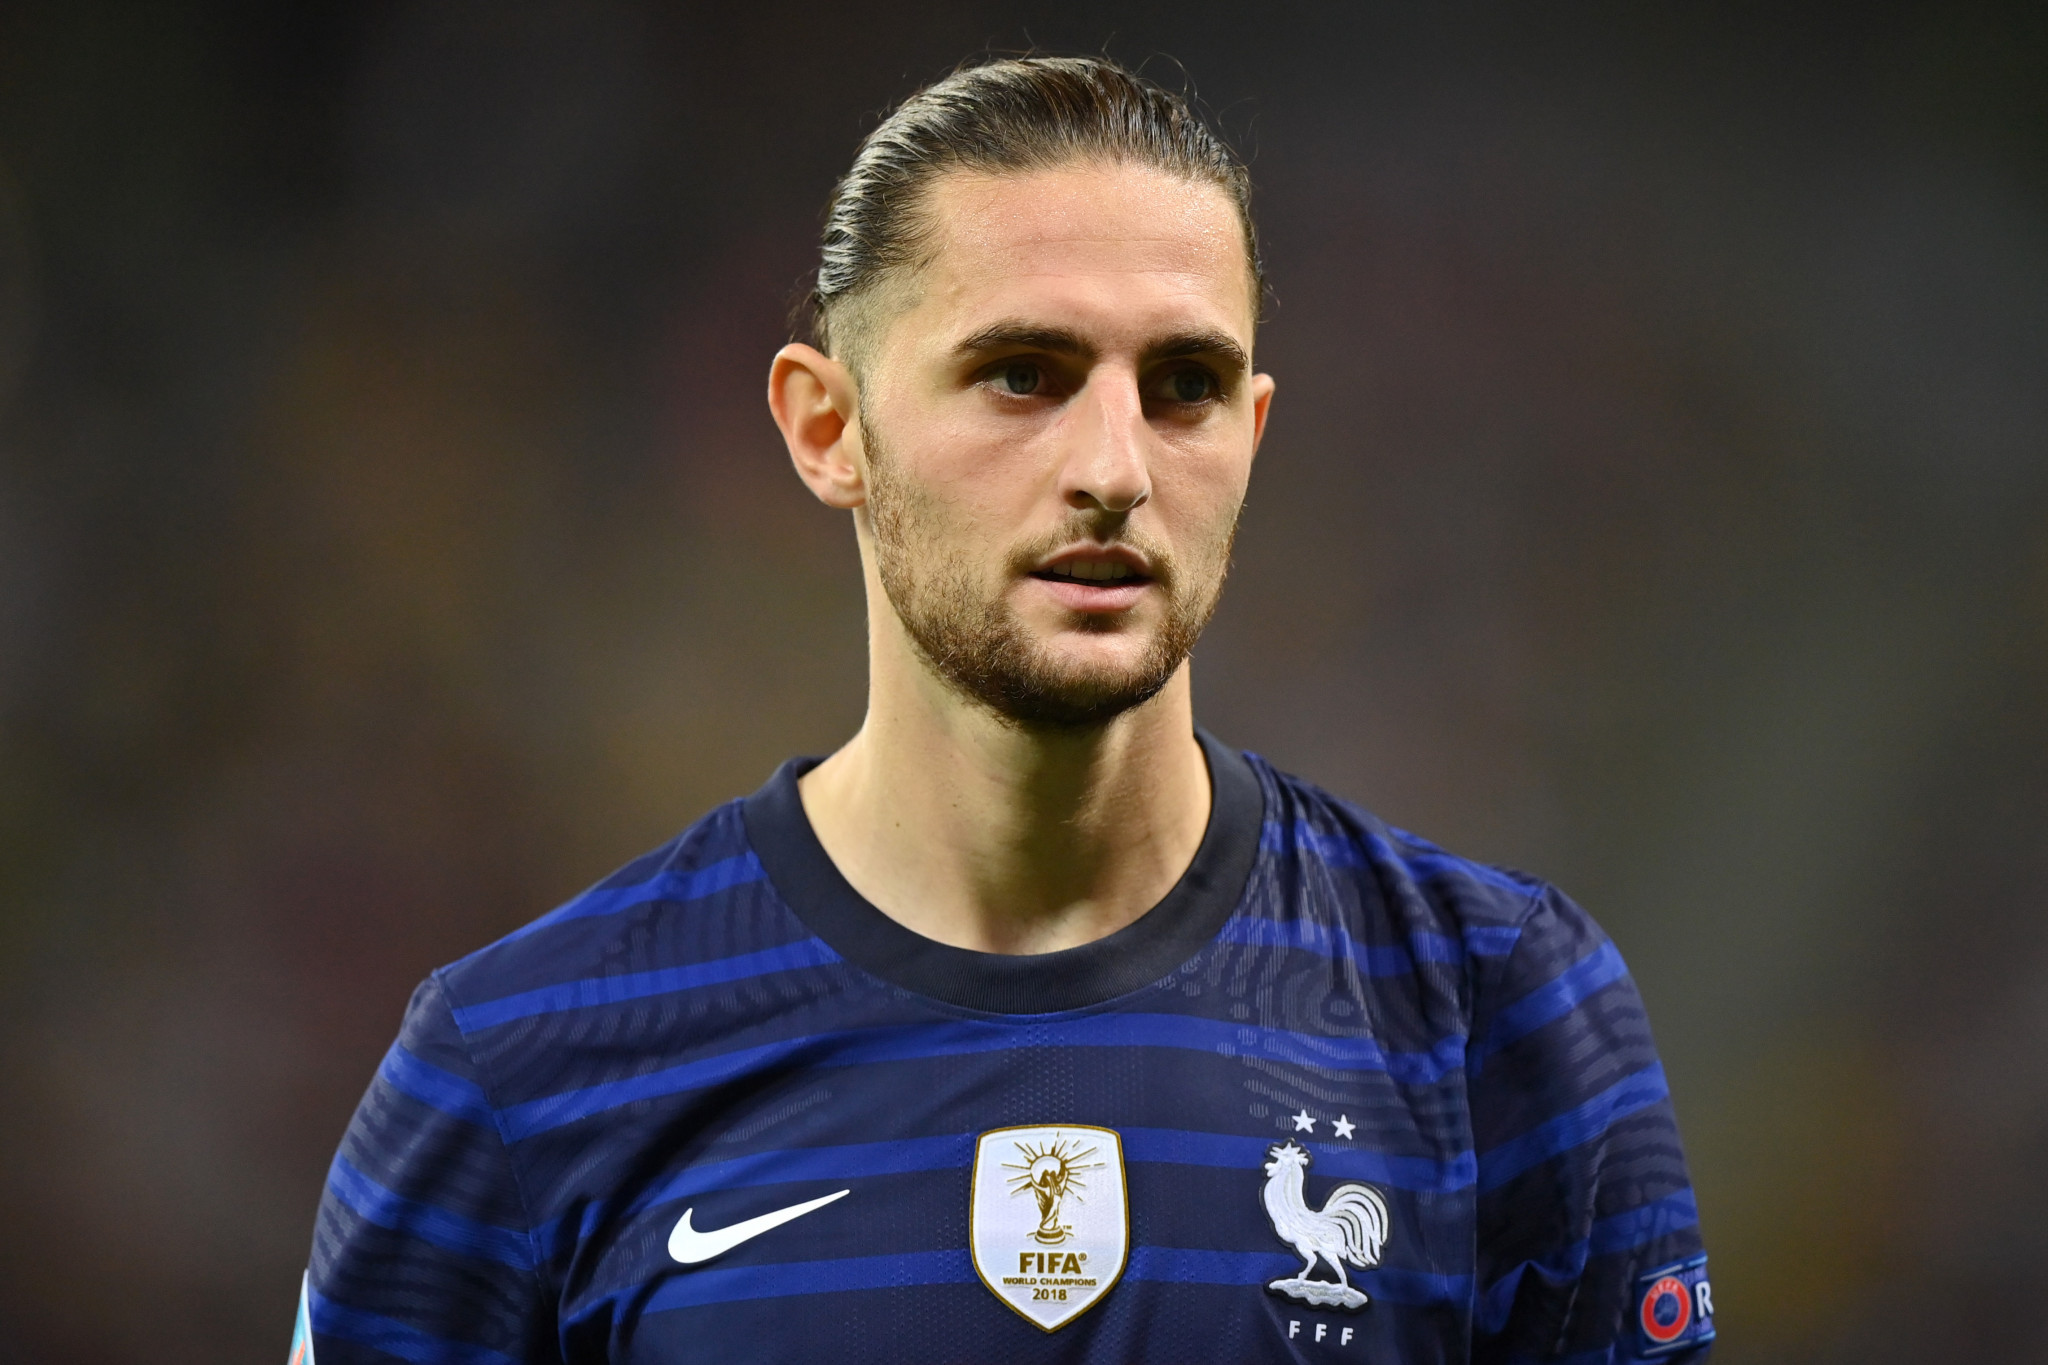 France's Adrien Rabiot out of UEFA Nations League final with positive COVID-19 test